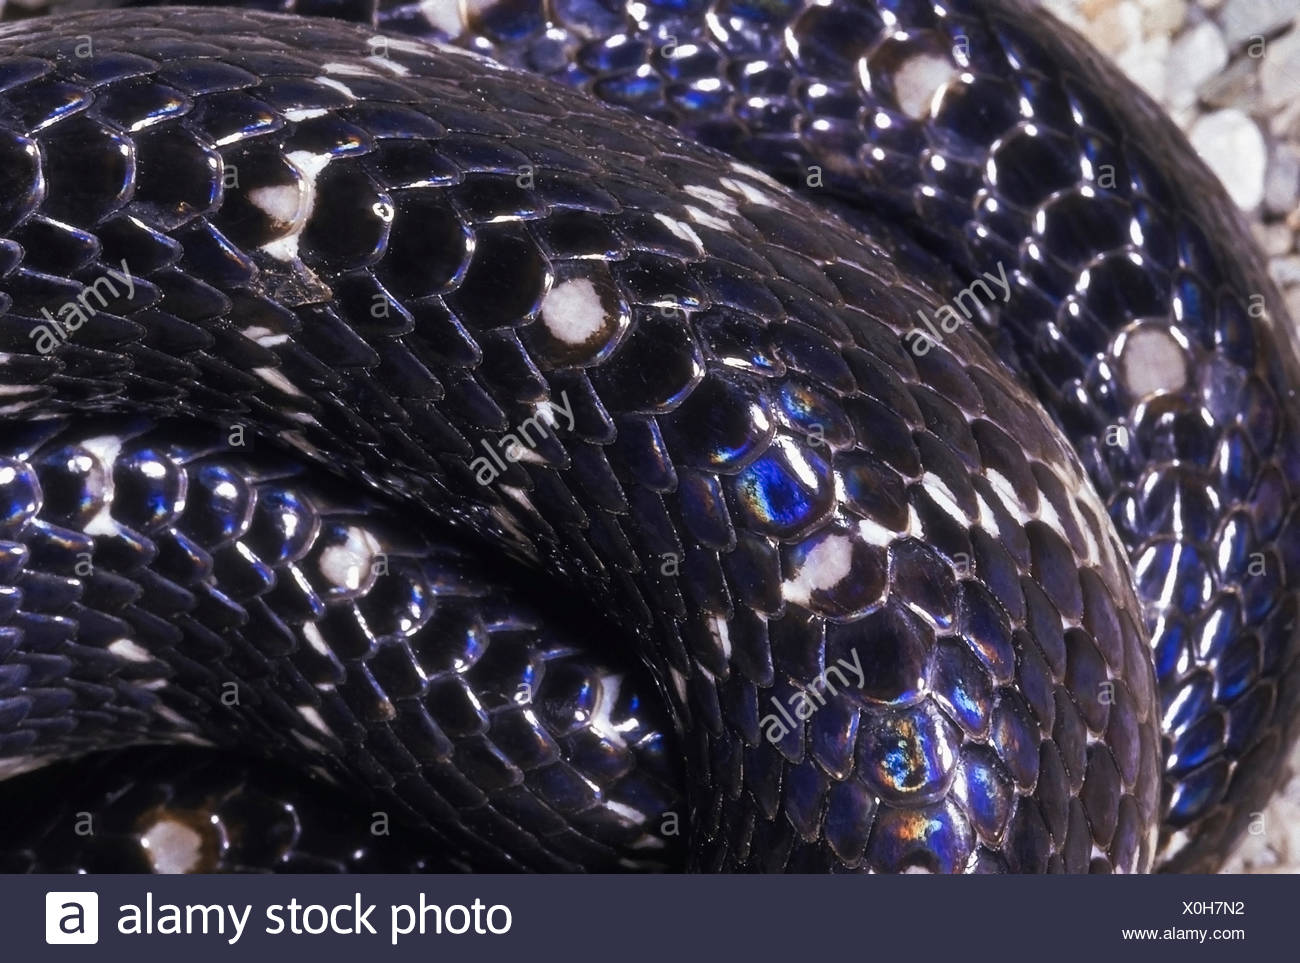 SCALE DETAIL KRAIT Bungarus species. Shows enlarged, hexagonal scales. Specimen from near Pune, Maharashtra, India. - Stock Image